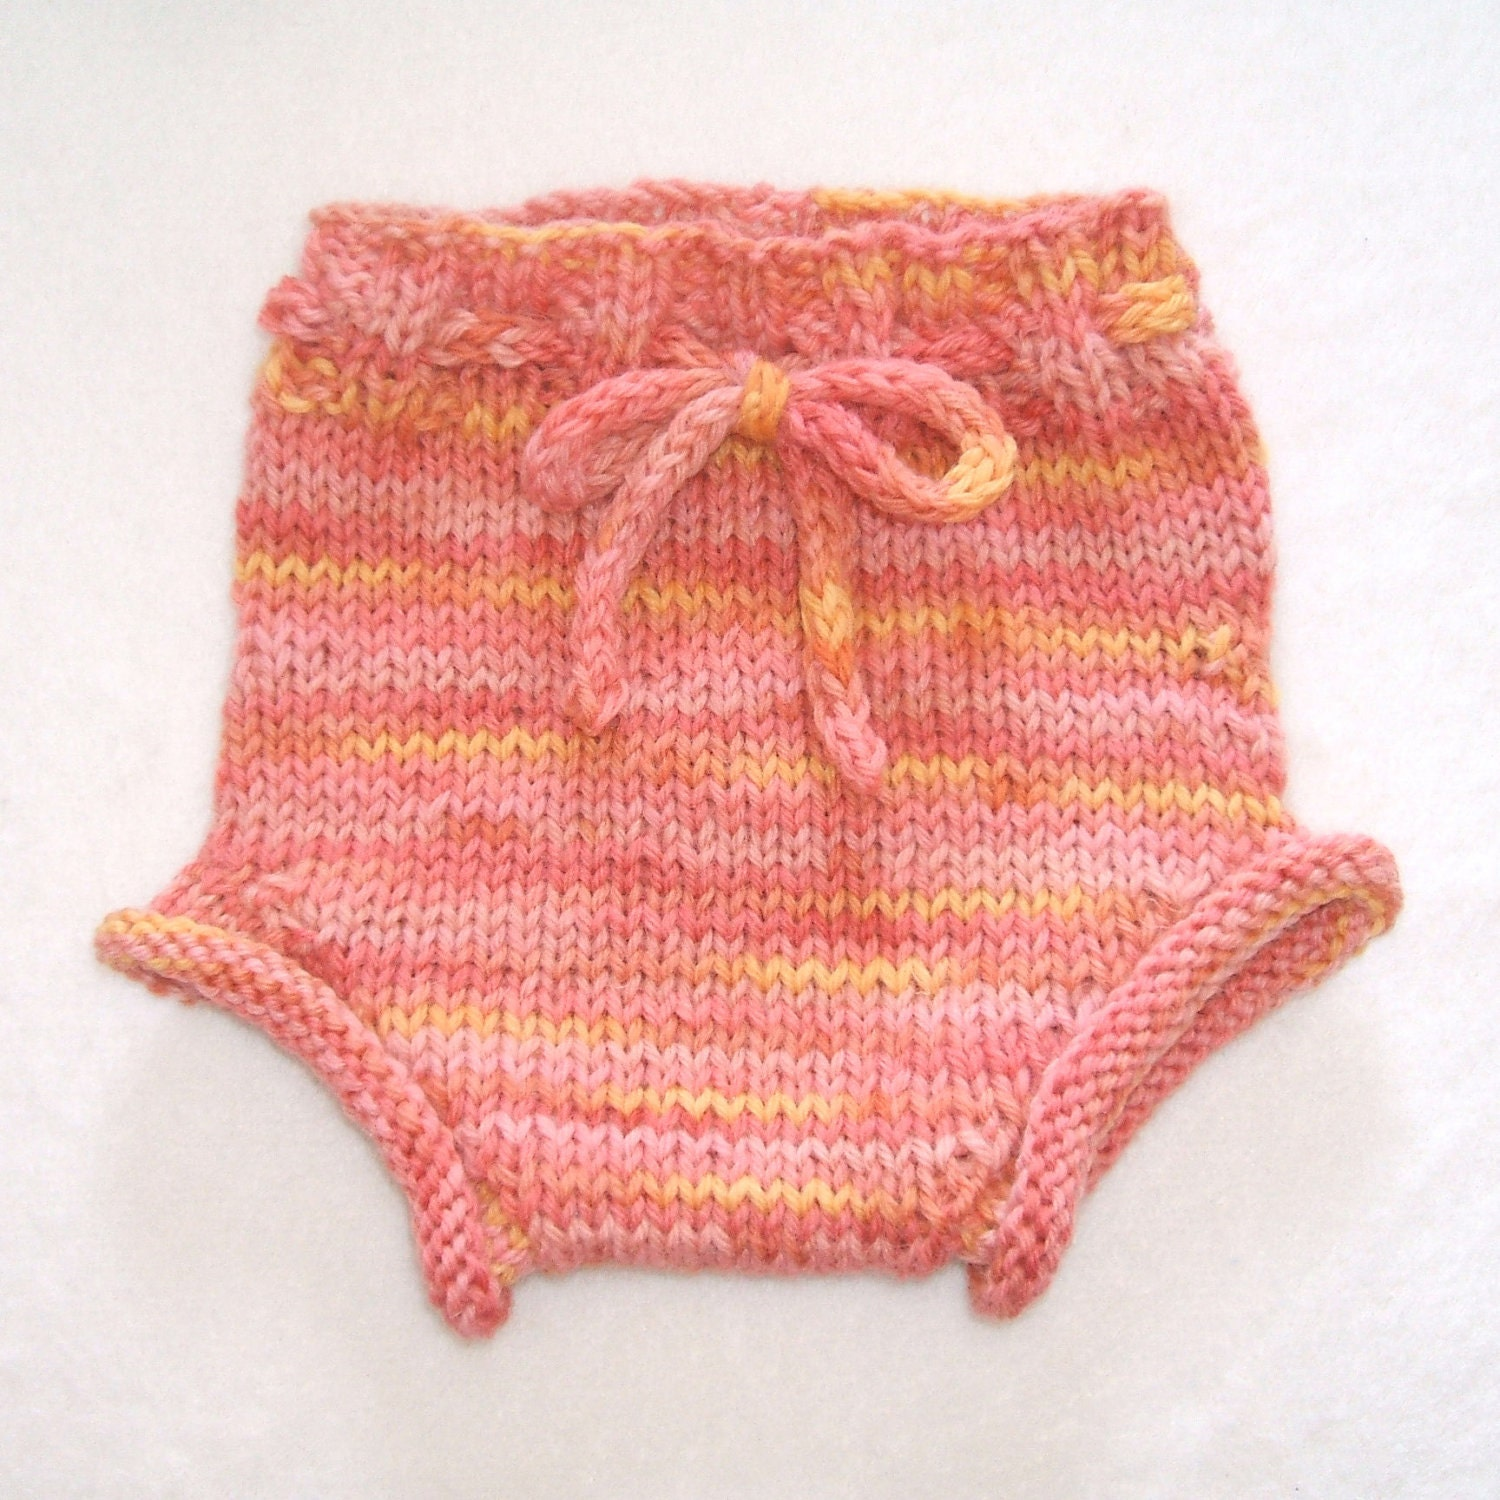 Knitting Pattern For Wool Diaper Covers : Wool Diaper Cover Newborn Hand Knit Wool Soaker by ...